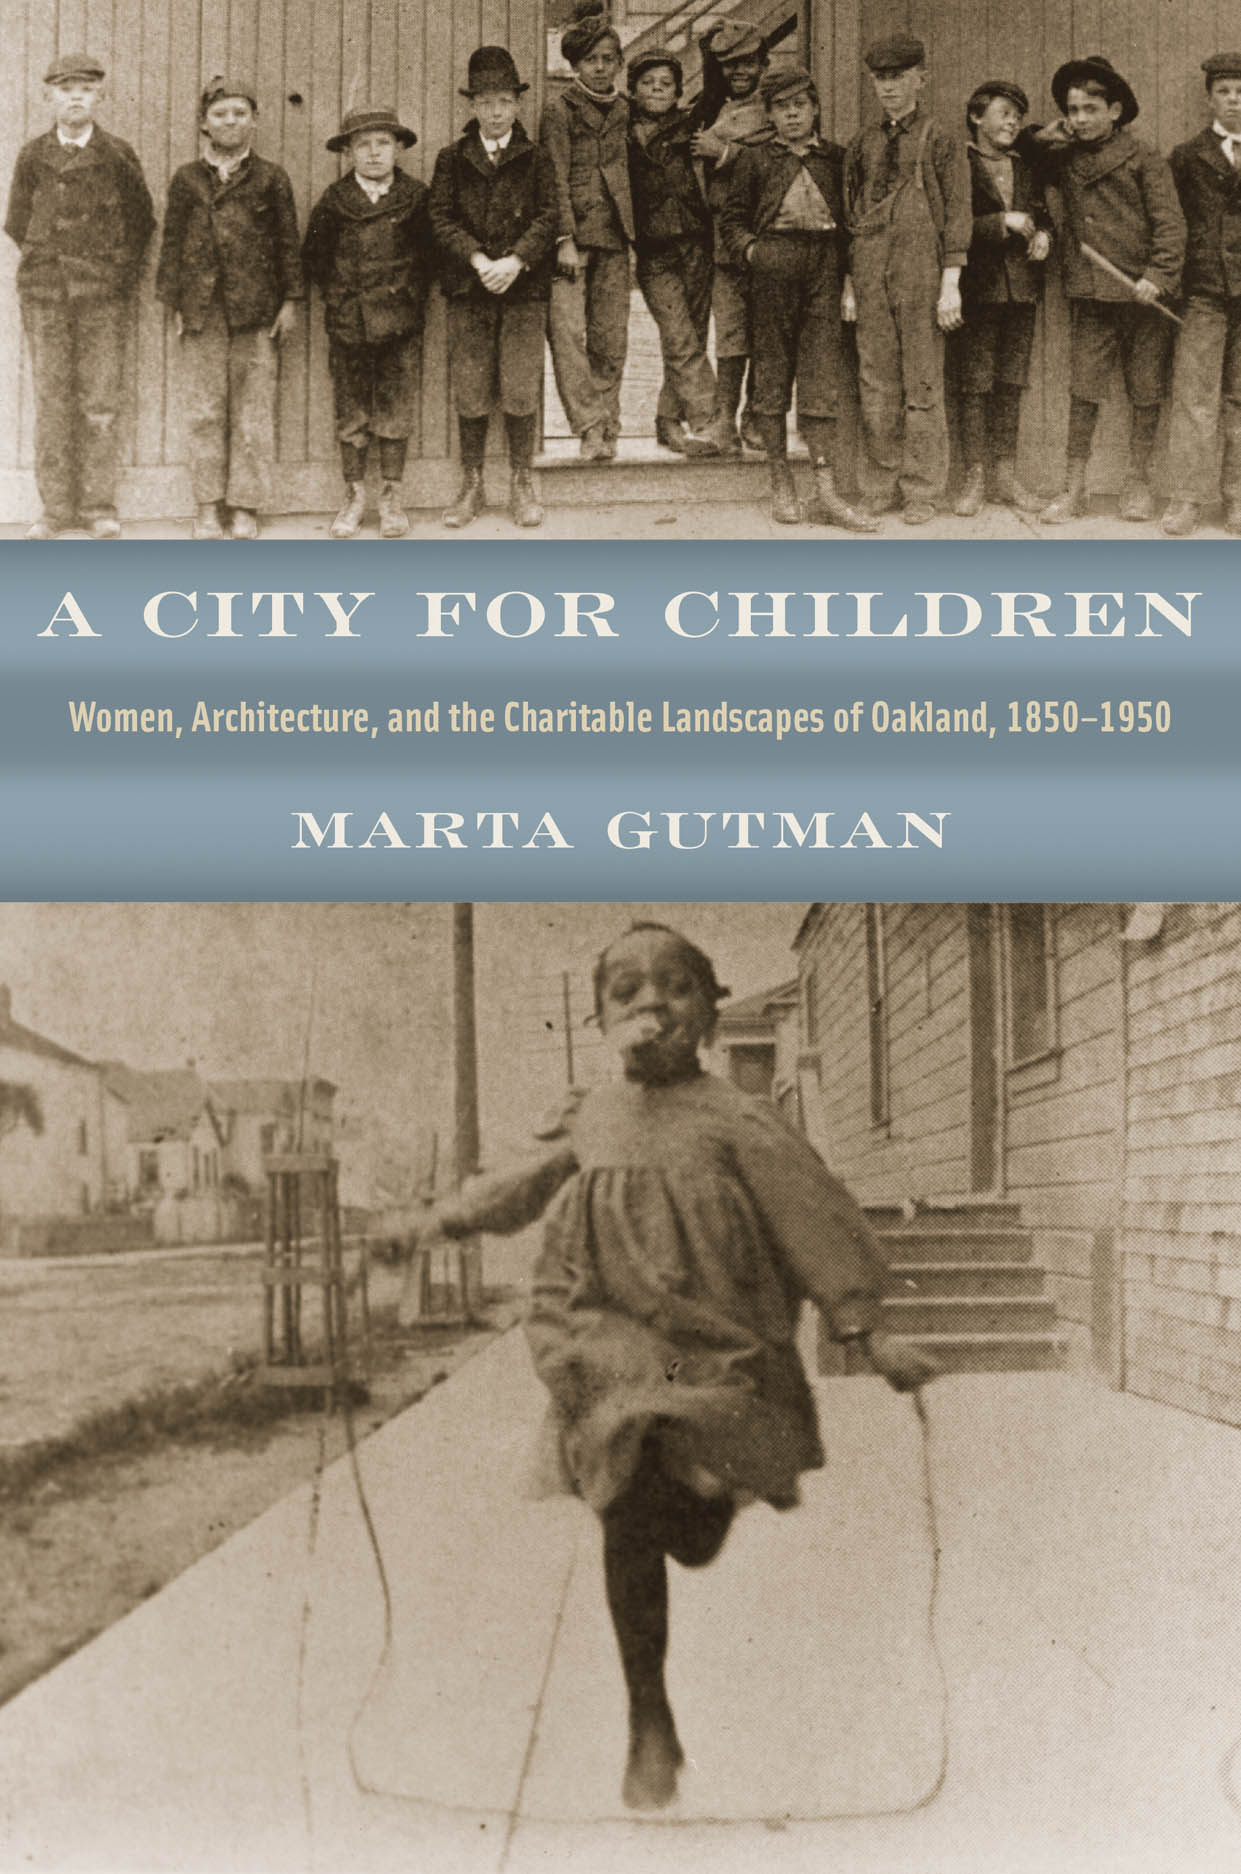 A City for Children: Women, Architecture, and the Charitable Landscapes of Oakland, 1850-1950